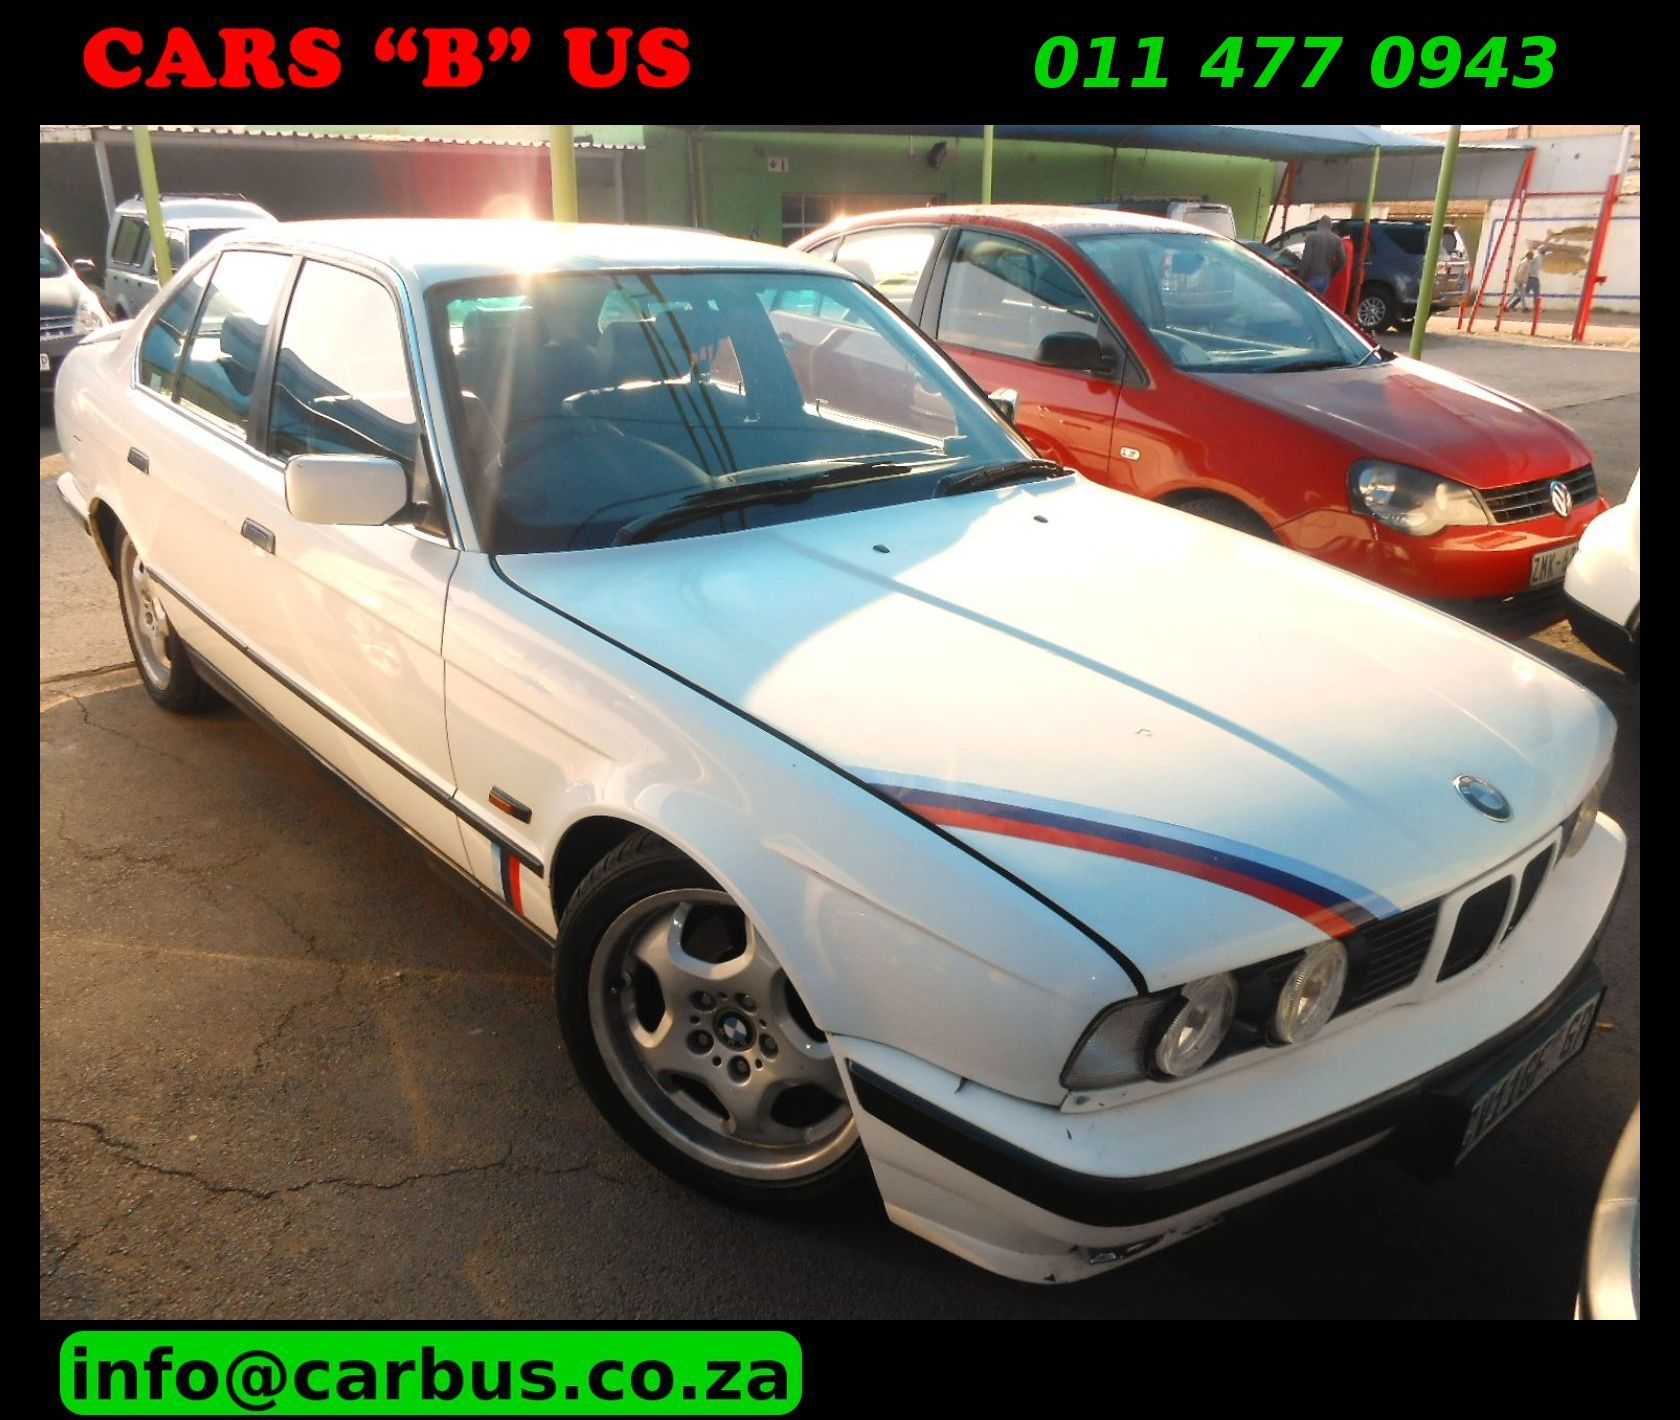 """1994 Bmw 525i: Contact Cars """"B"""" Us For Used Cars For Sale"""